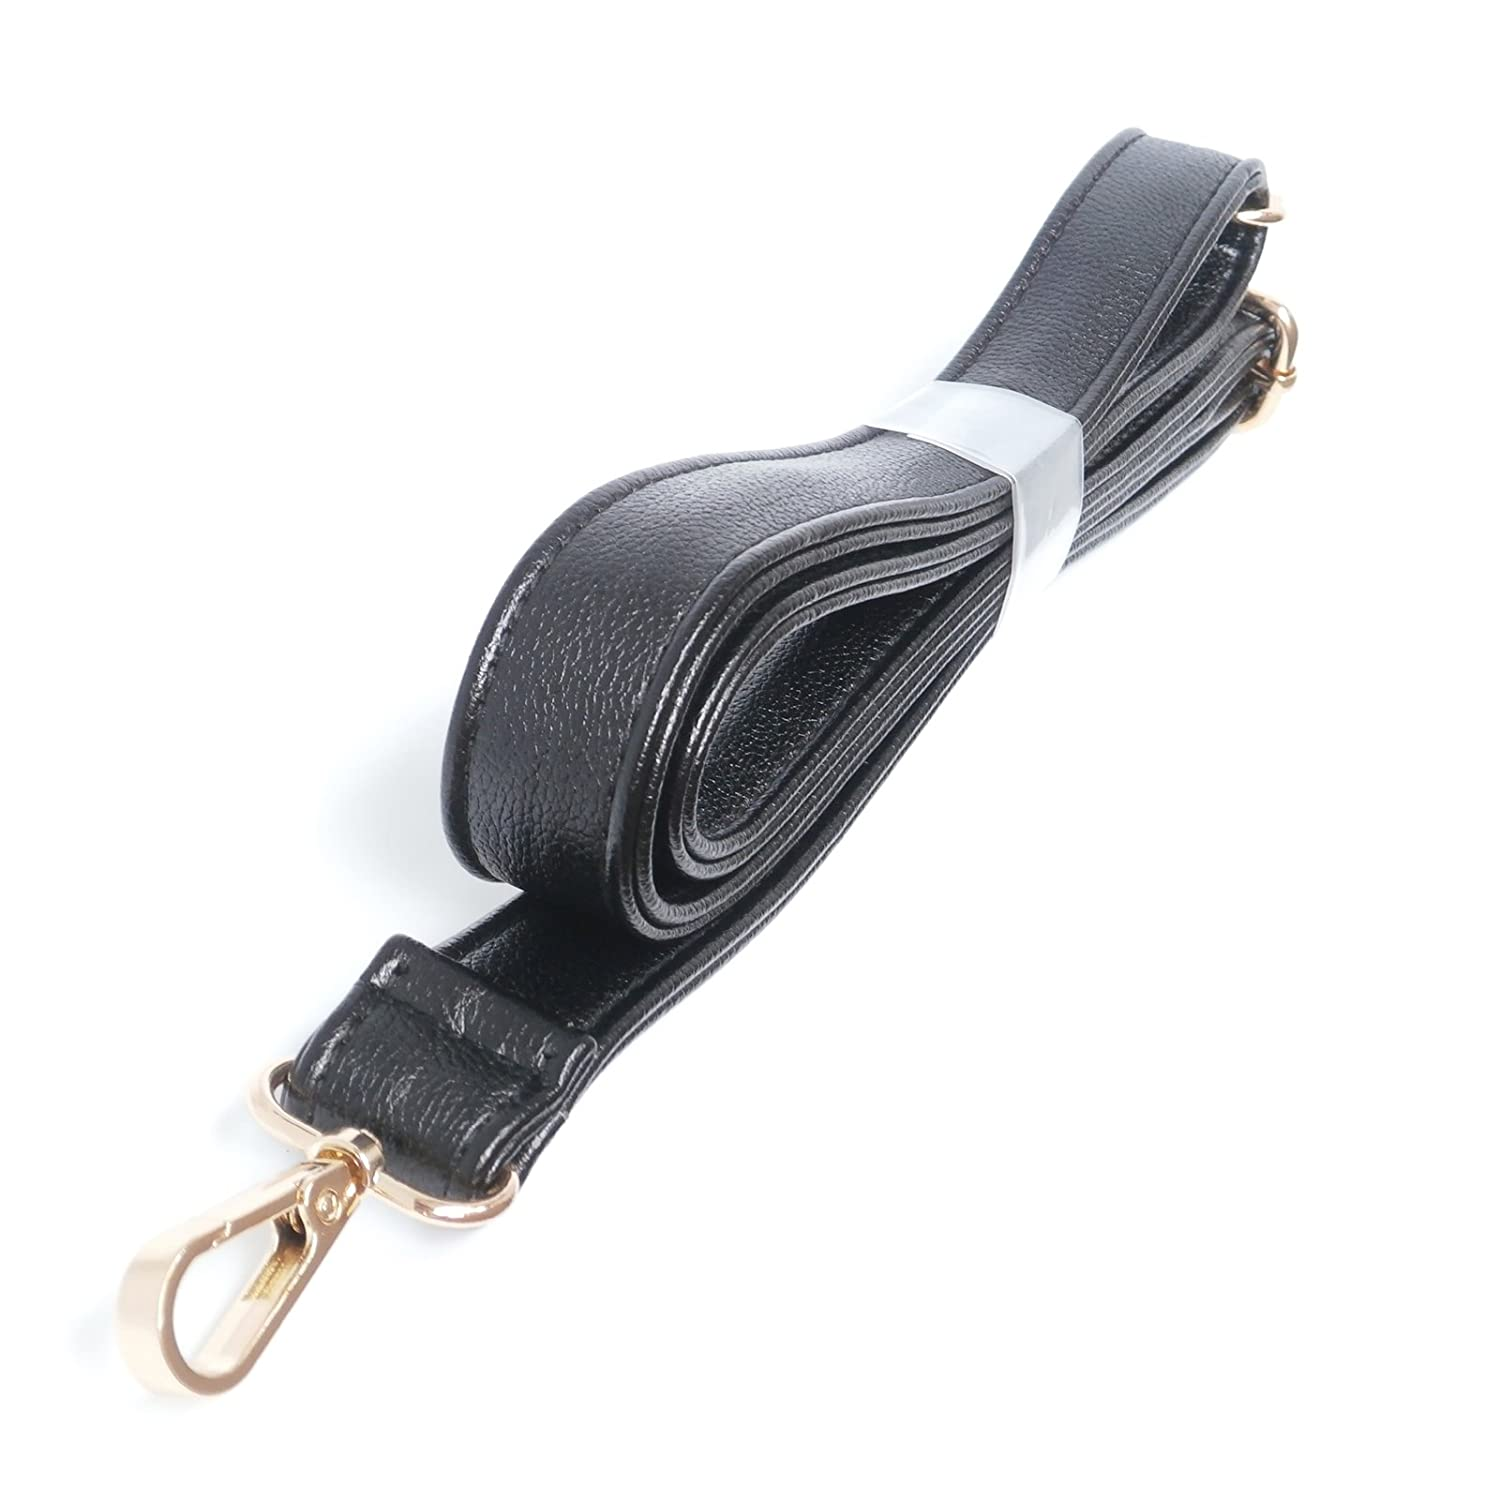 (Golden Clasps) Black 25mm Width Pu Leather Female Messenger Purse Strap Bag Accessories Shoulder Bag Straps Length 49.2 Inches Grace Young